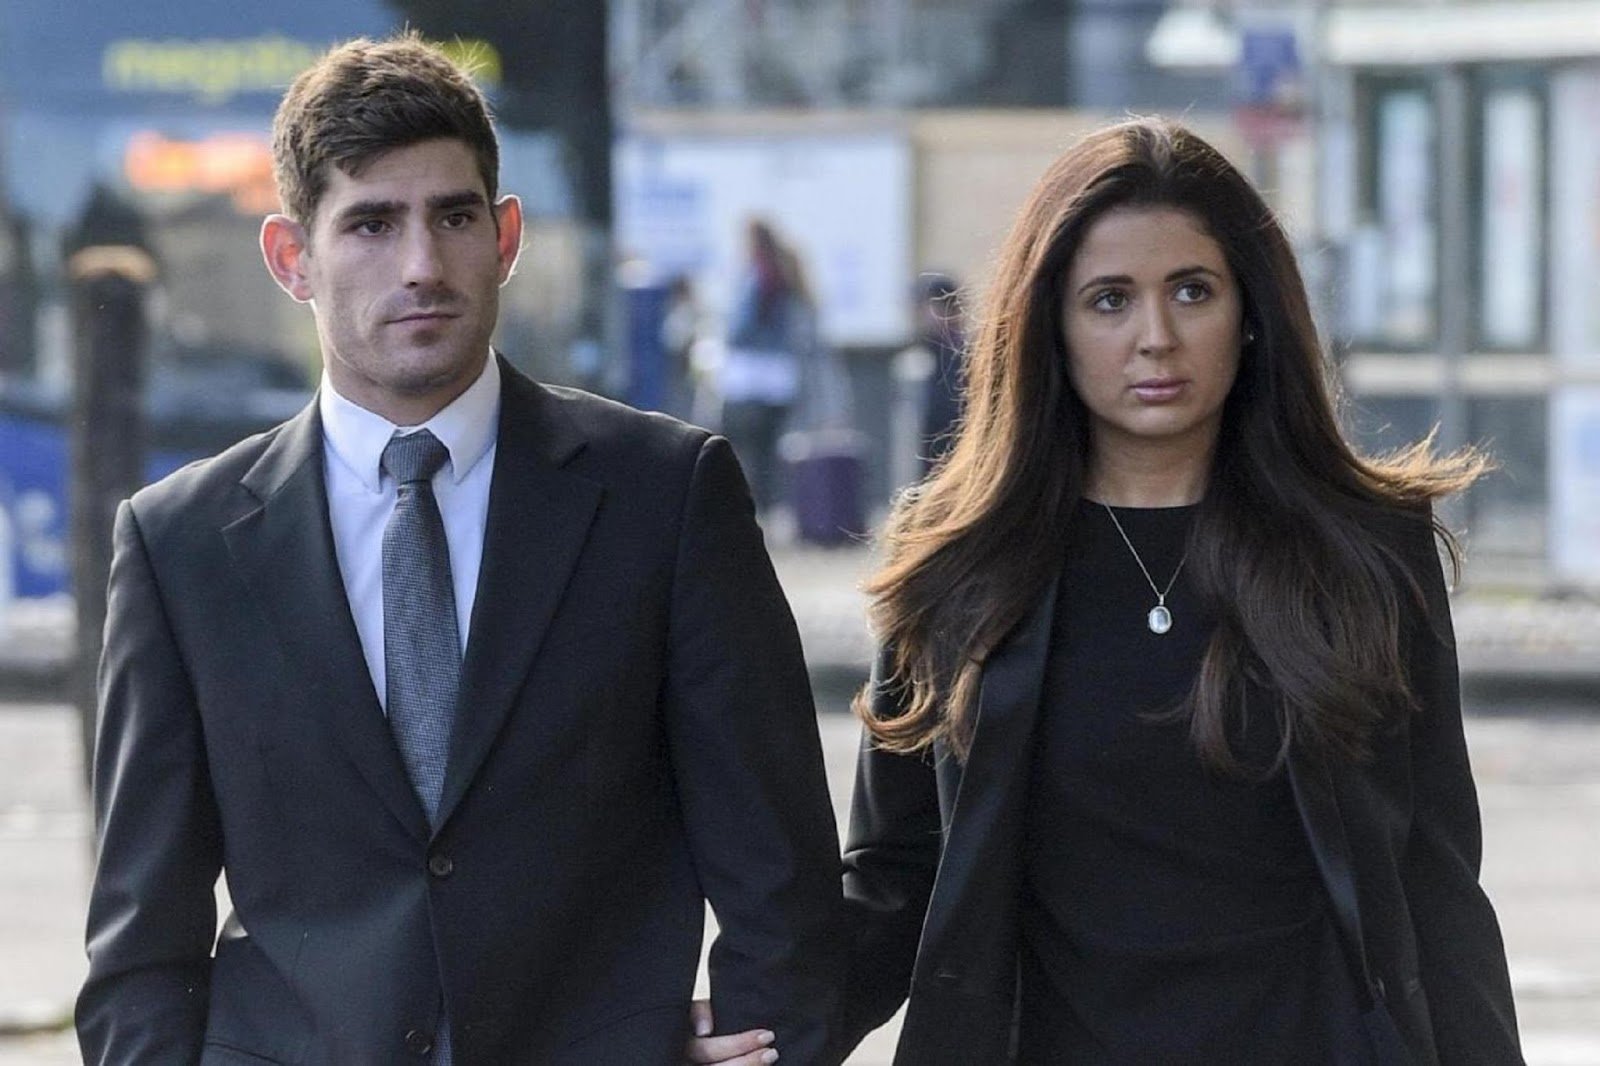 CHED EVANS 3